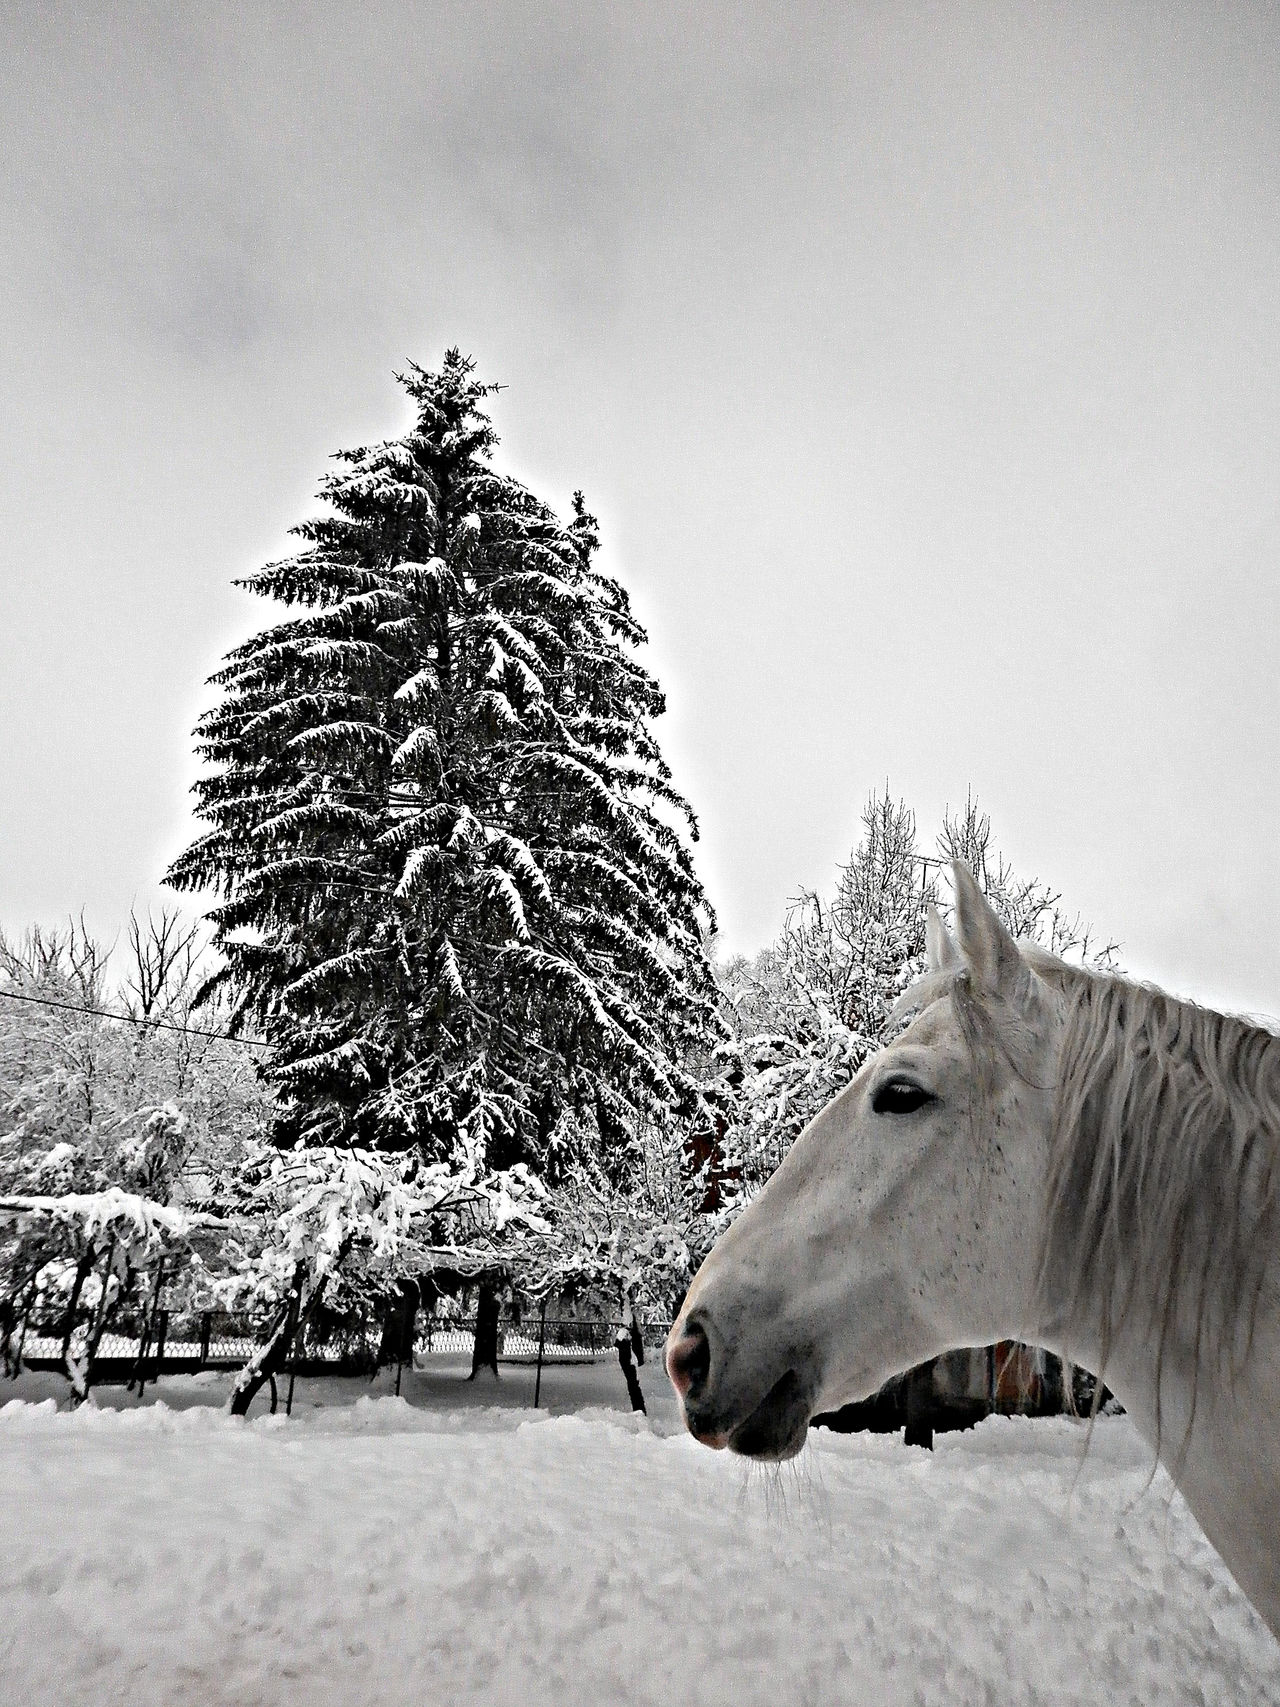 Animal Themes Beauty In Nature Cold Temperature Domestic Animals Horse Horses Nature No People One Animal Snow Tree Winter